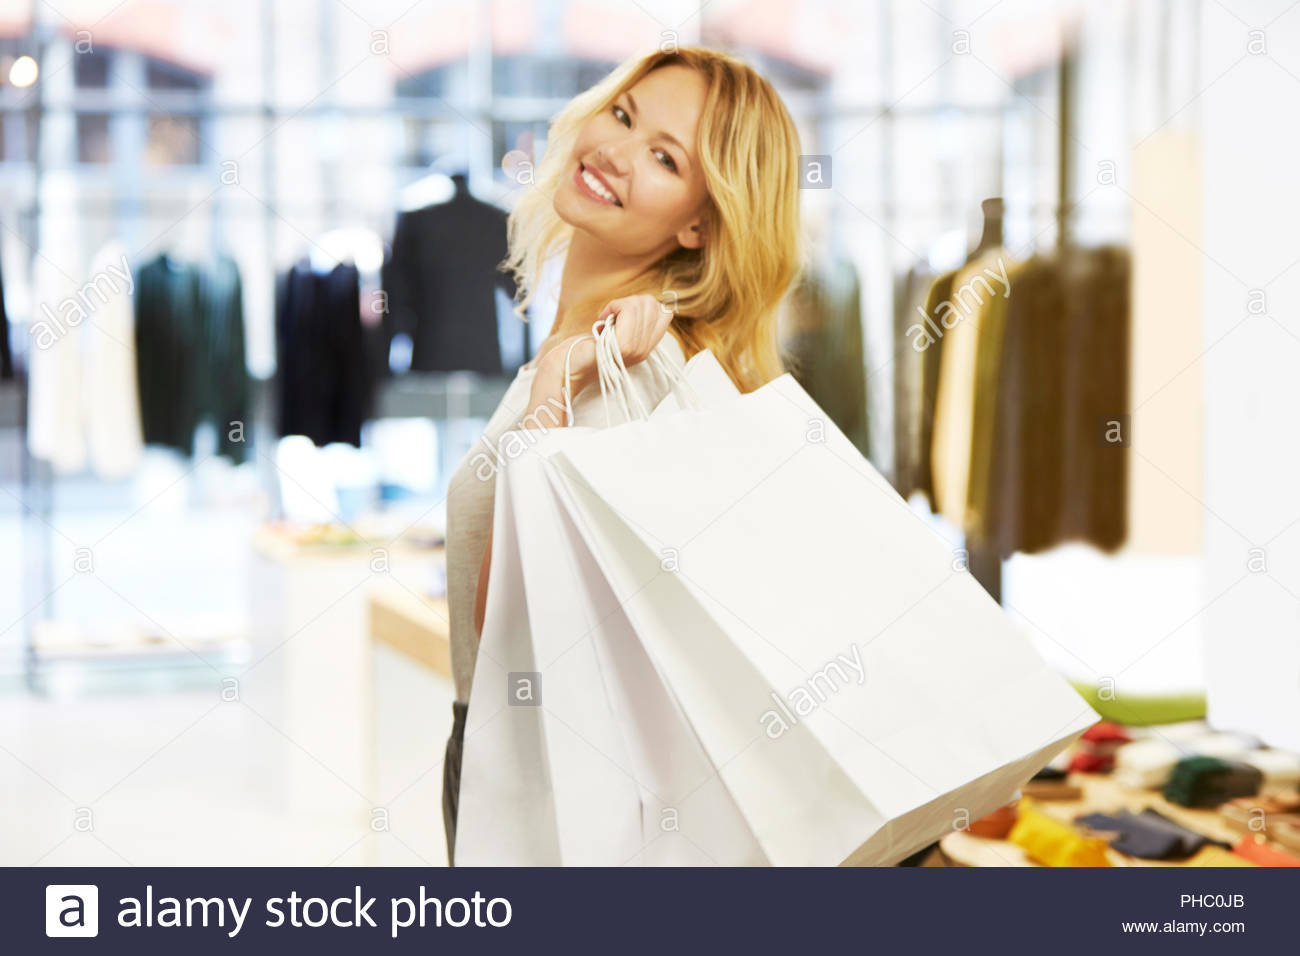 Smiling young woman holding shopping bags. - Stock Image